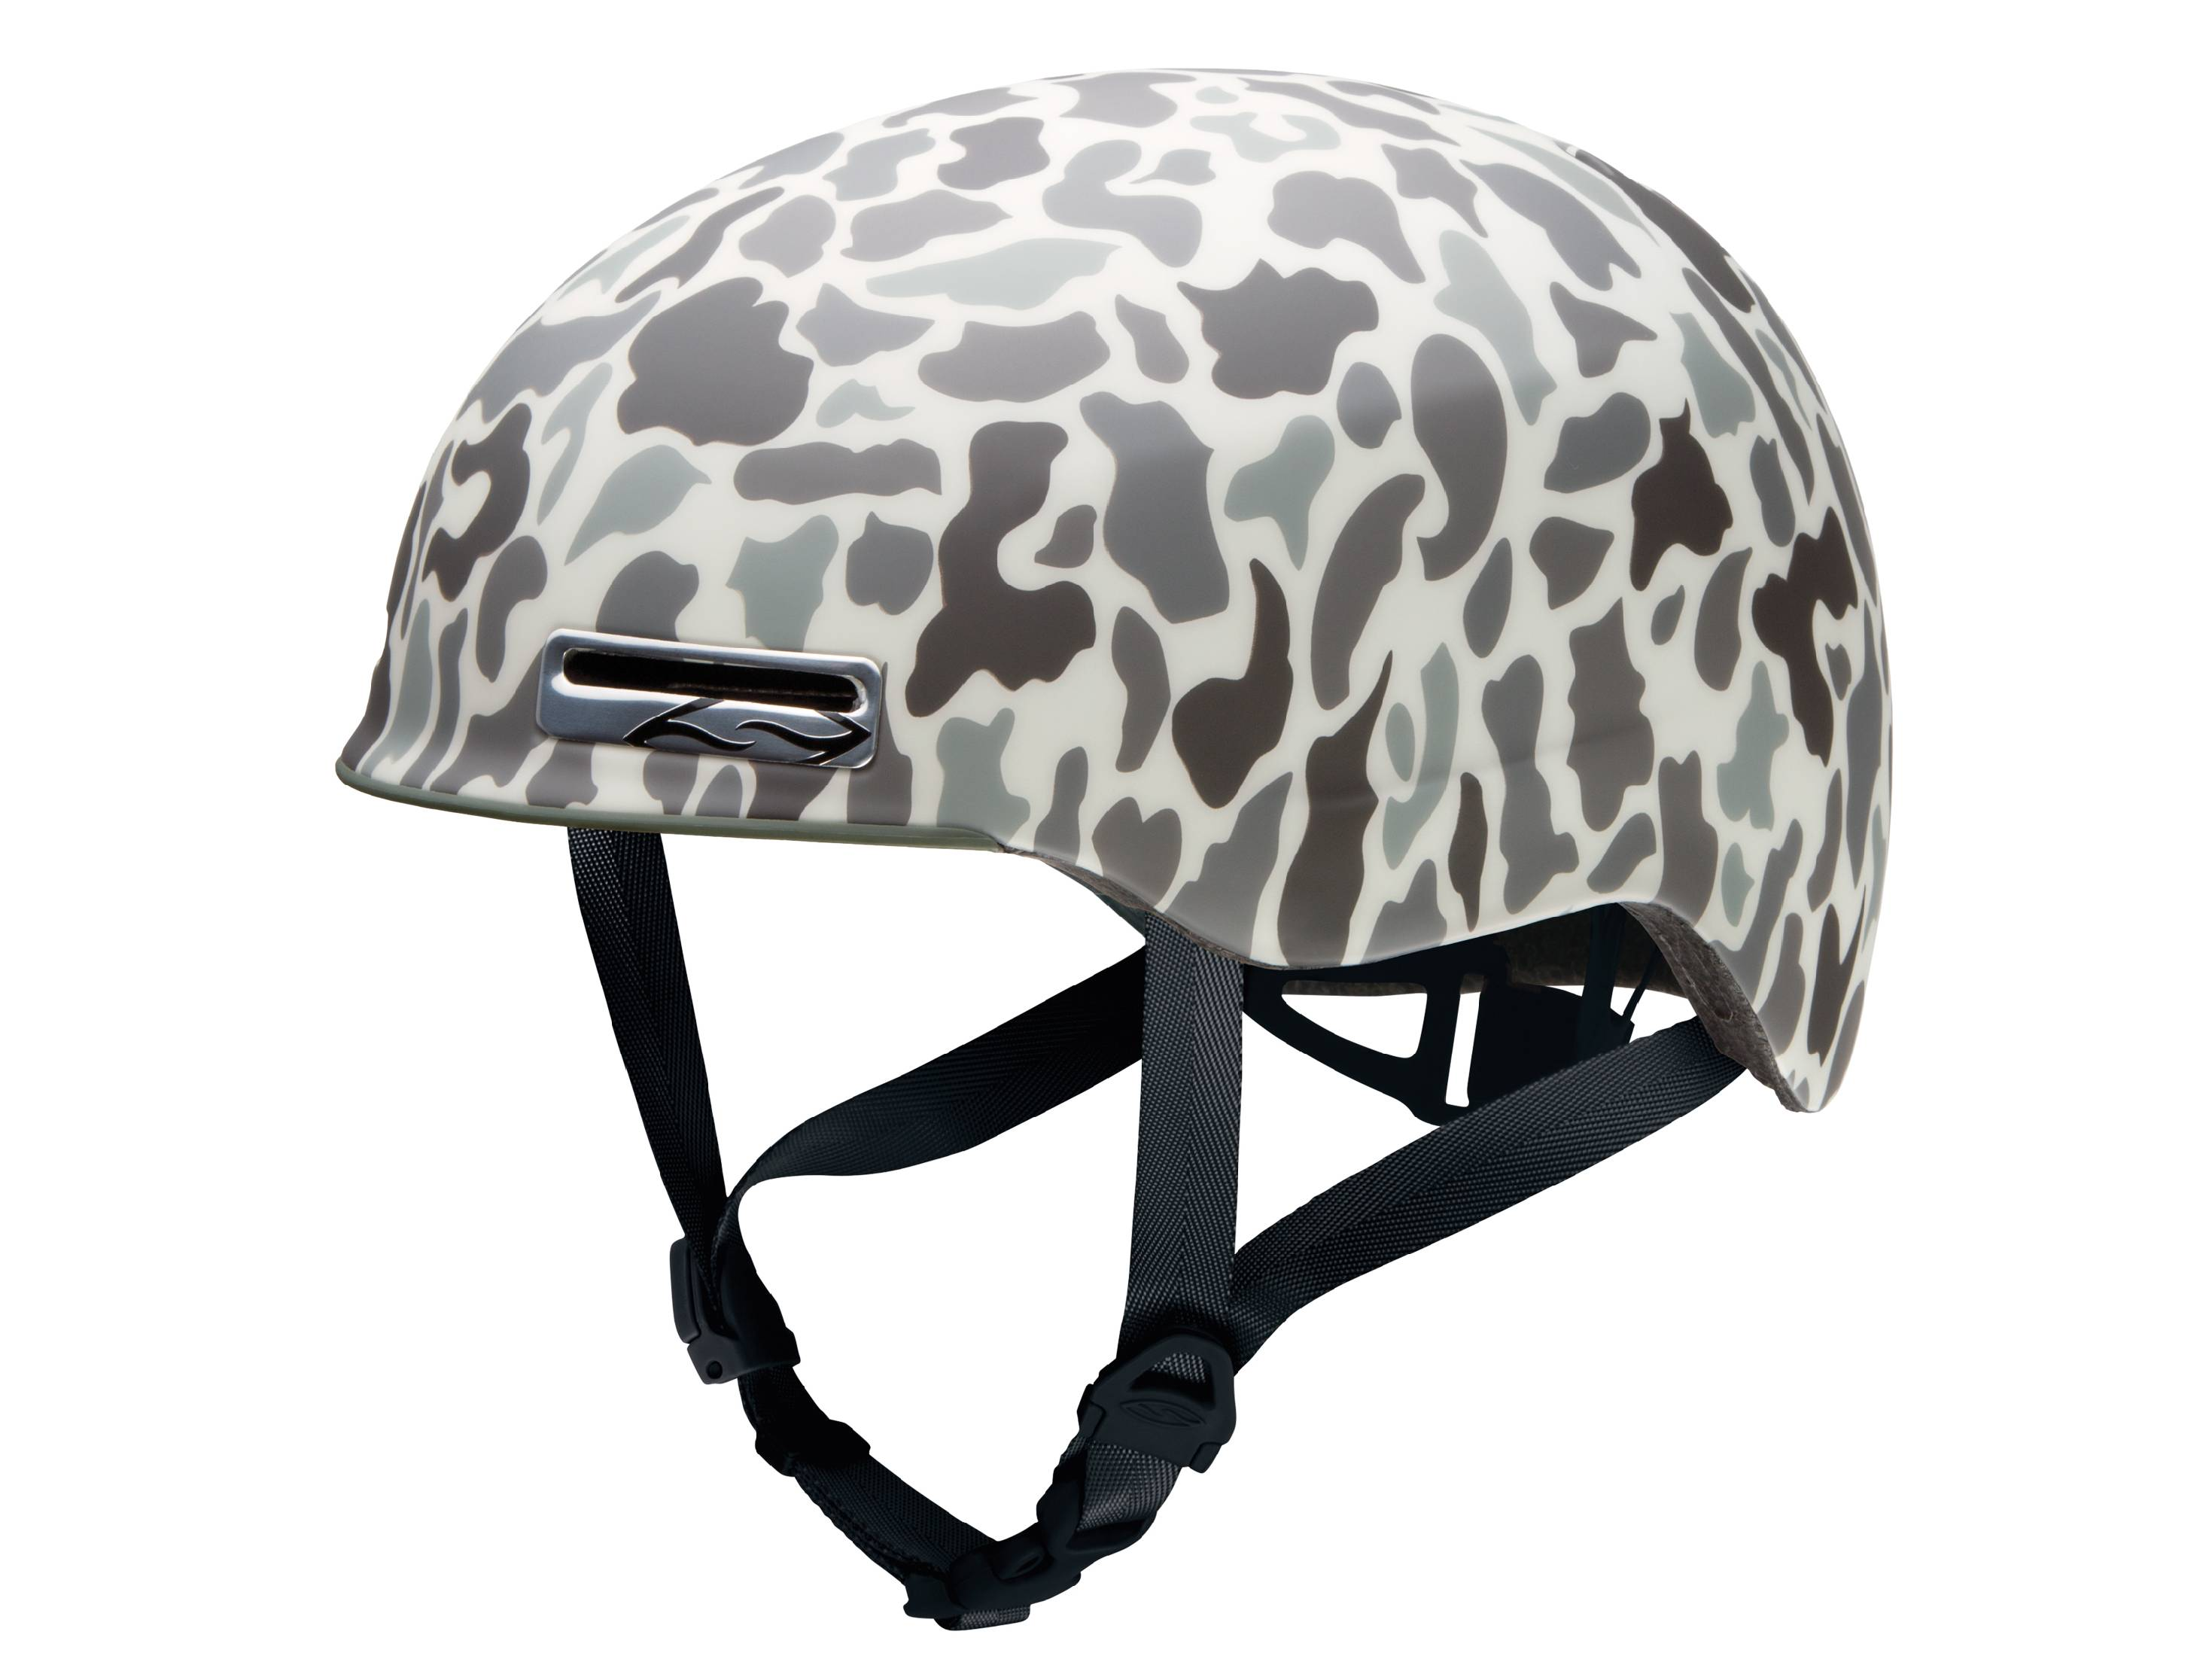 smith helmets fahrradhelm maze beige camouflage leicht x static gurt ebay. Black Bedroom Furniture Sets. Home Design Ideas